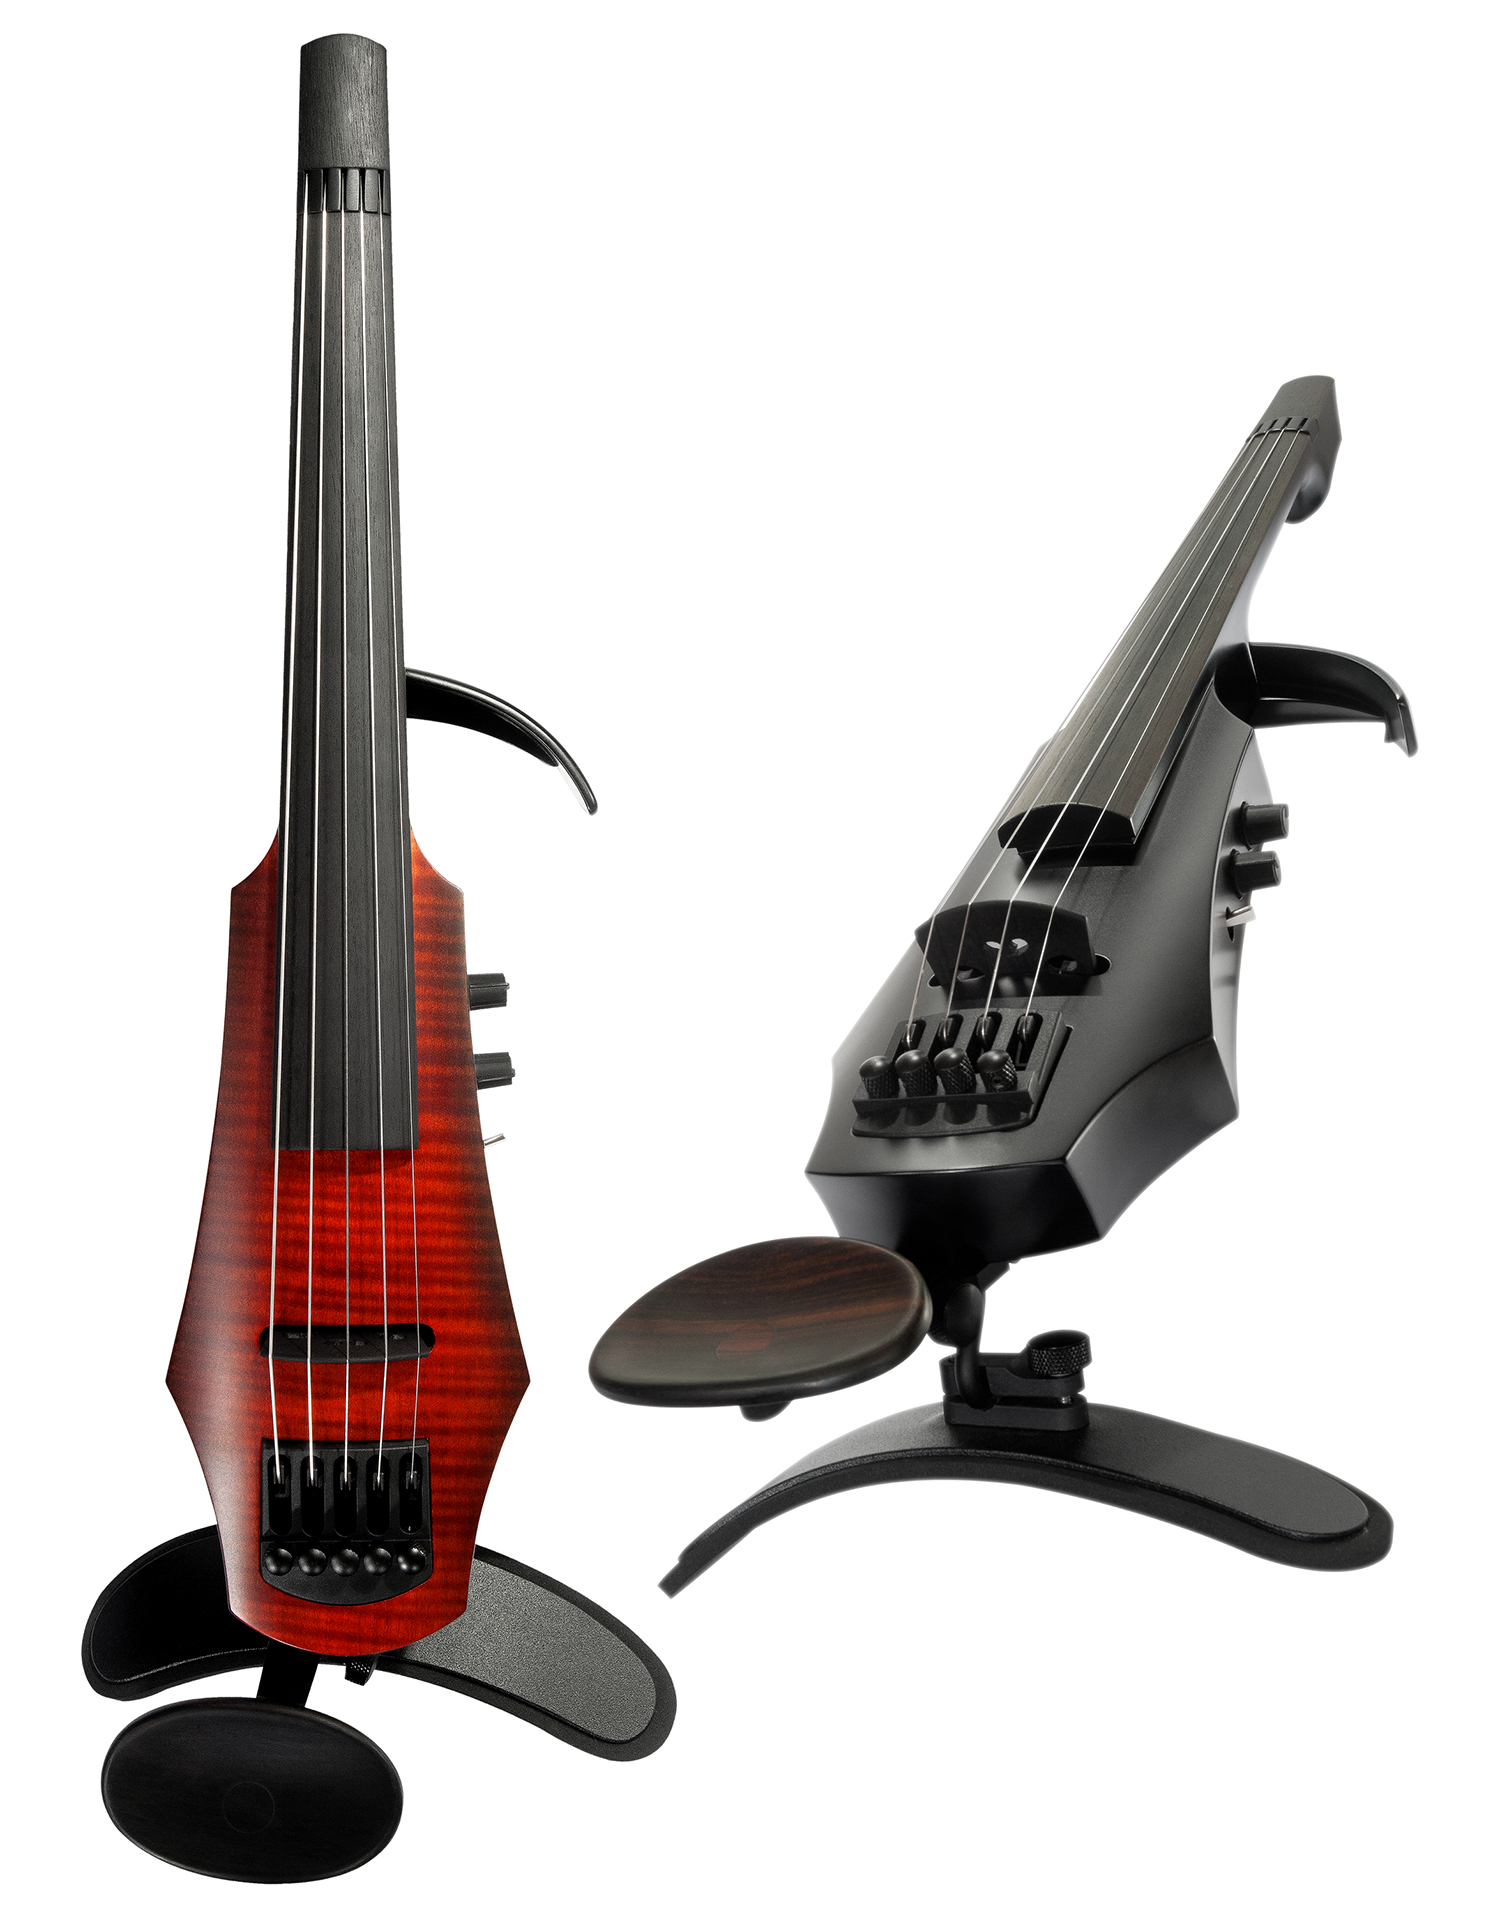 AD17 NXT4a and NXT5a Violin Combined